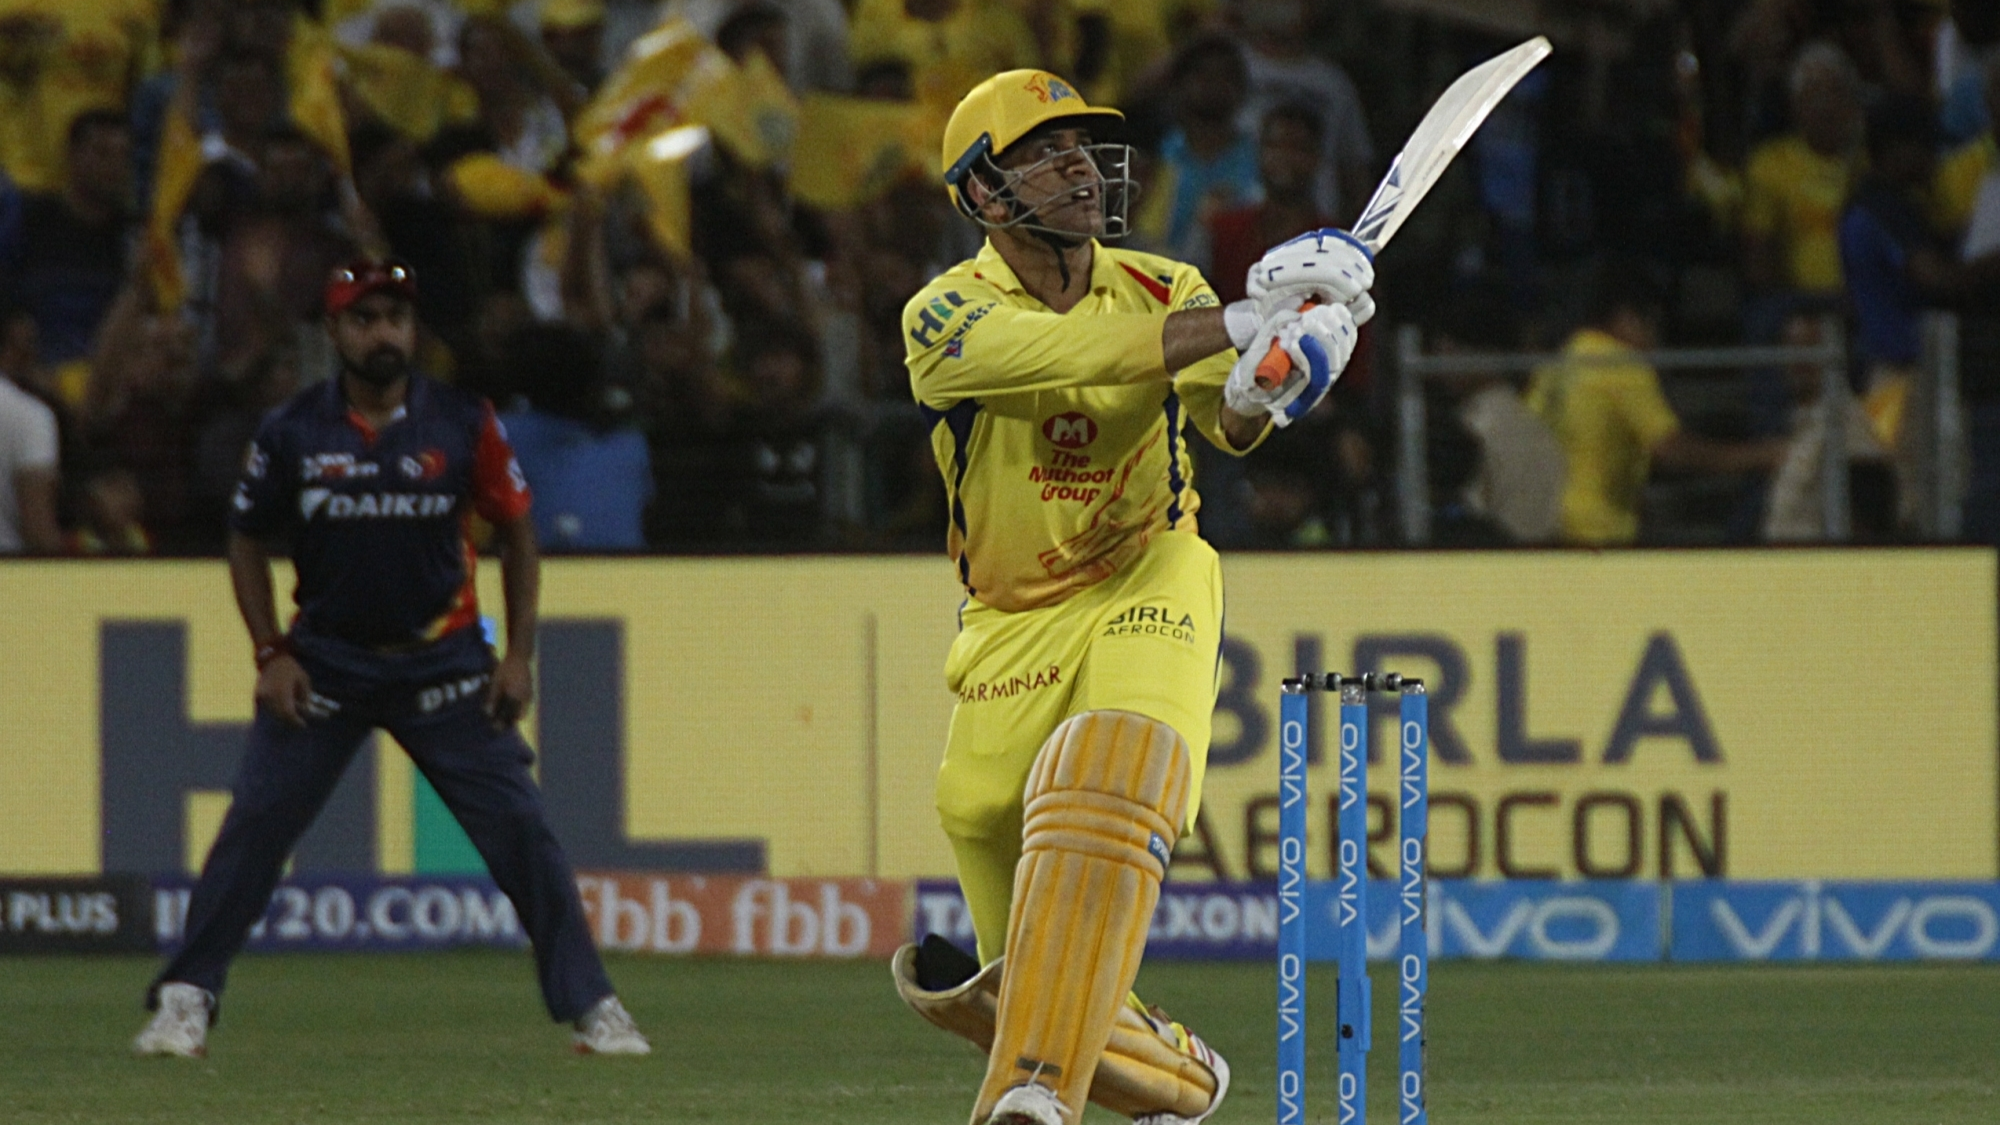 IPL 2018: Watch – MS Dhoni smacks three powerful sixes during his 22-ball 51* against DD